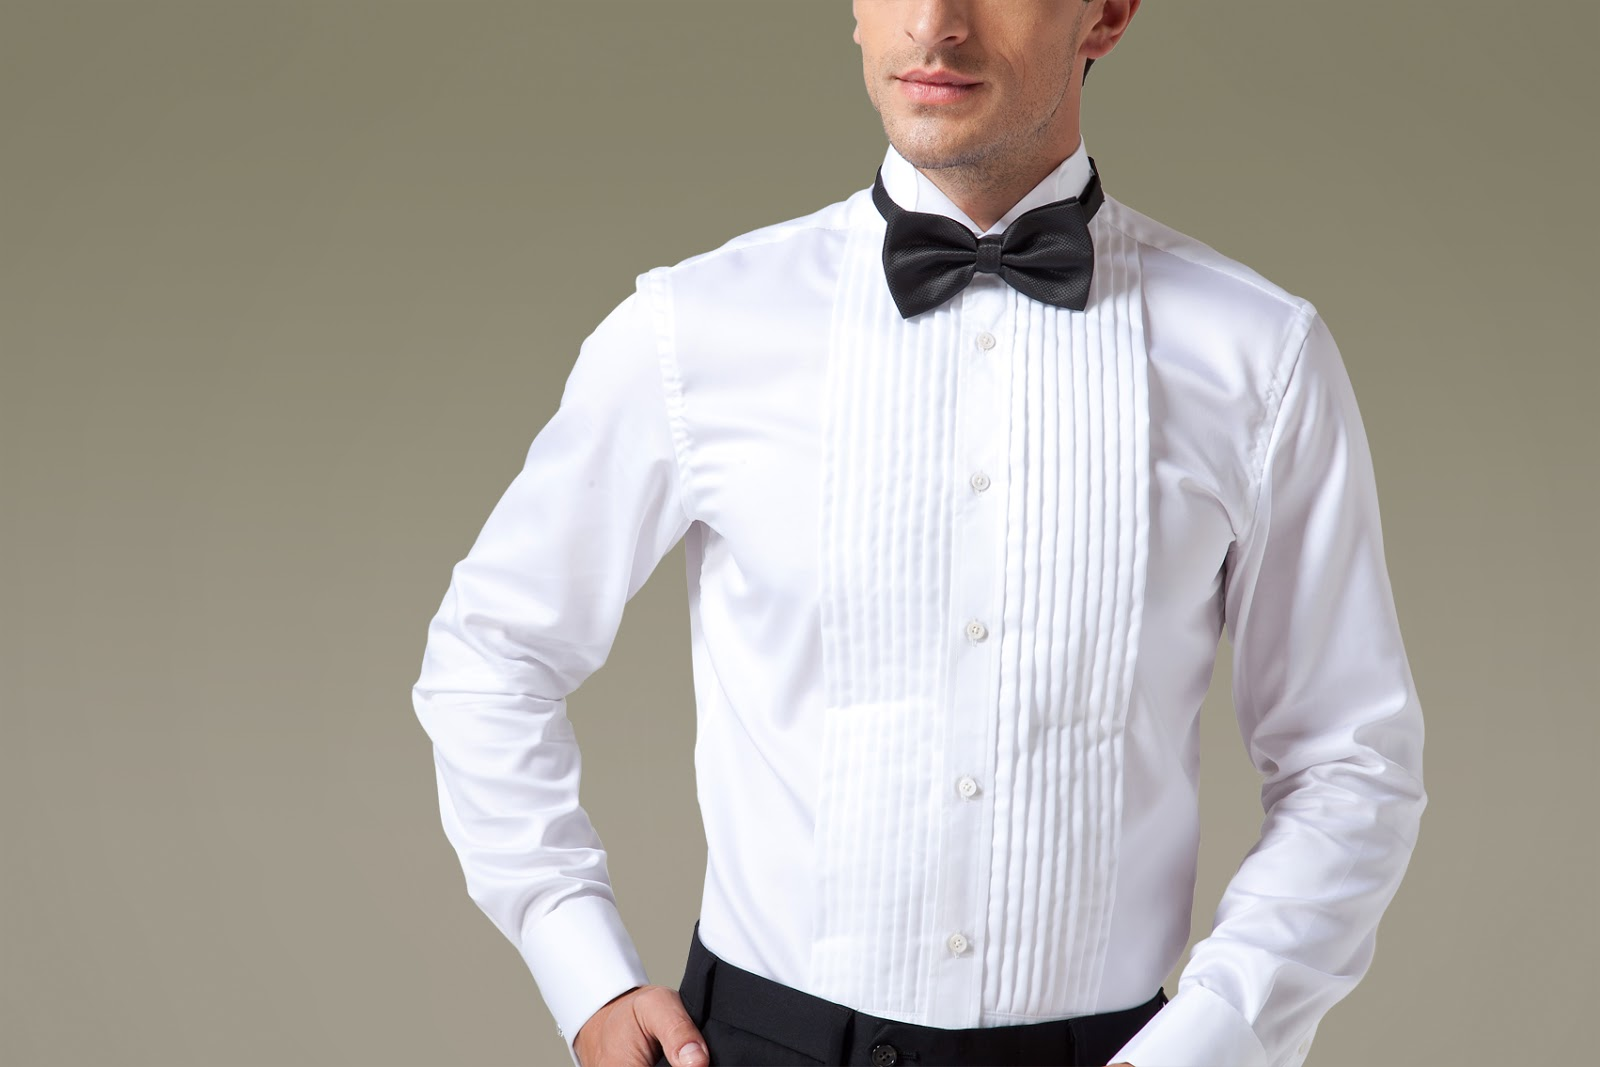 Tuxedo Shirts For Men Depotpicture